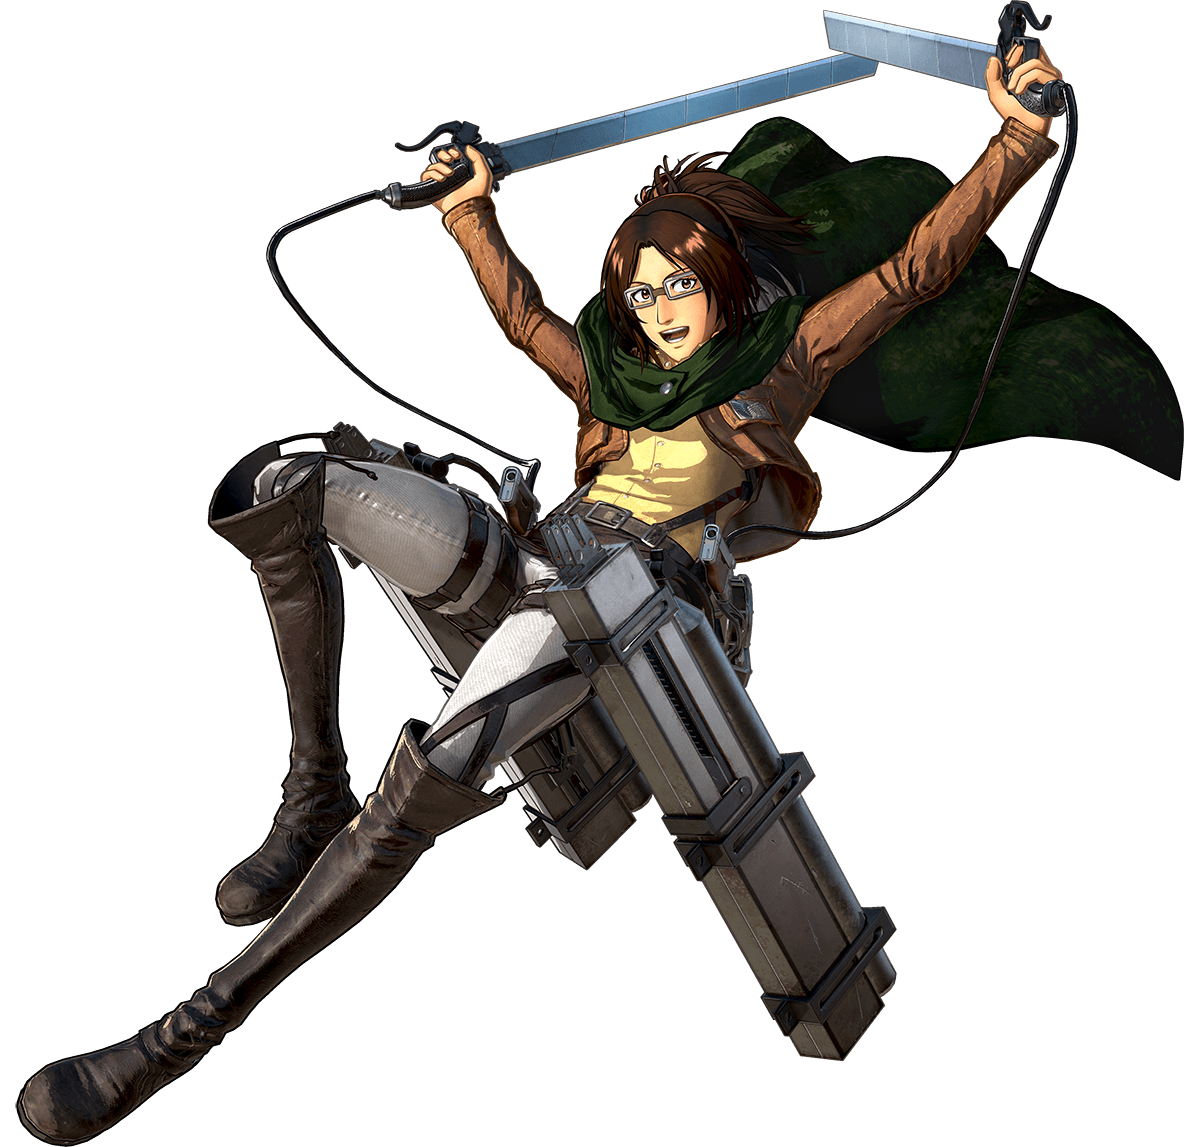 Hange Zoe Render (Attack on Titan 2 Game)